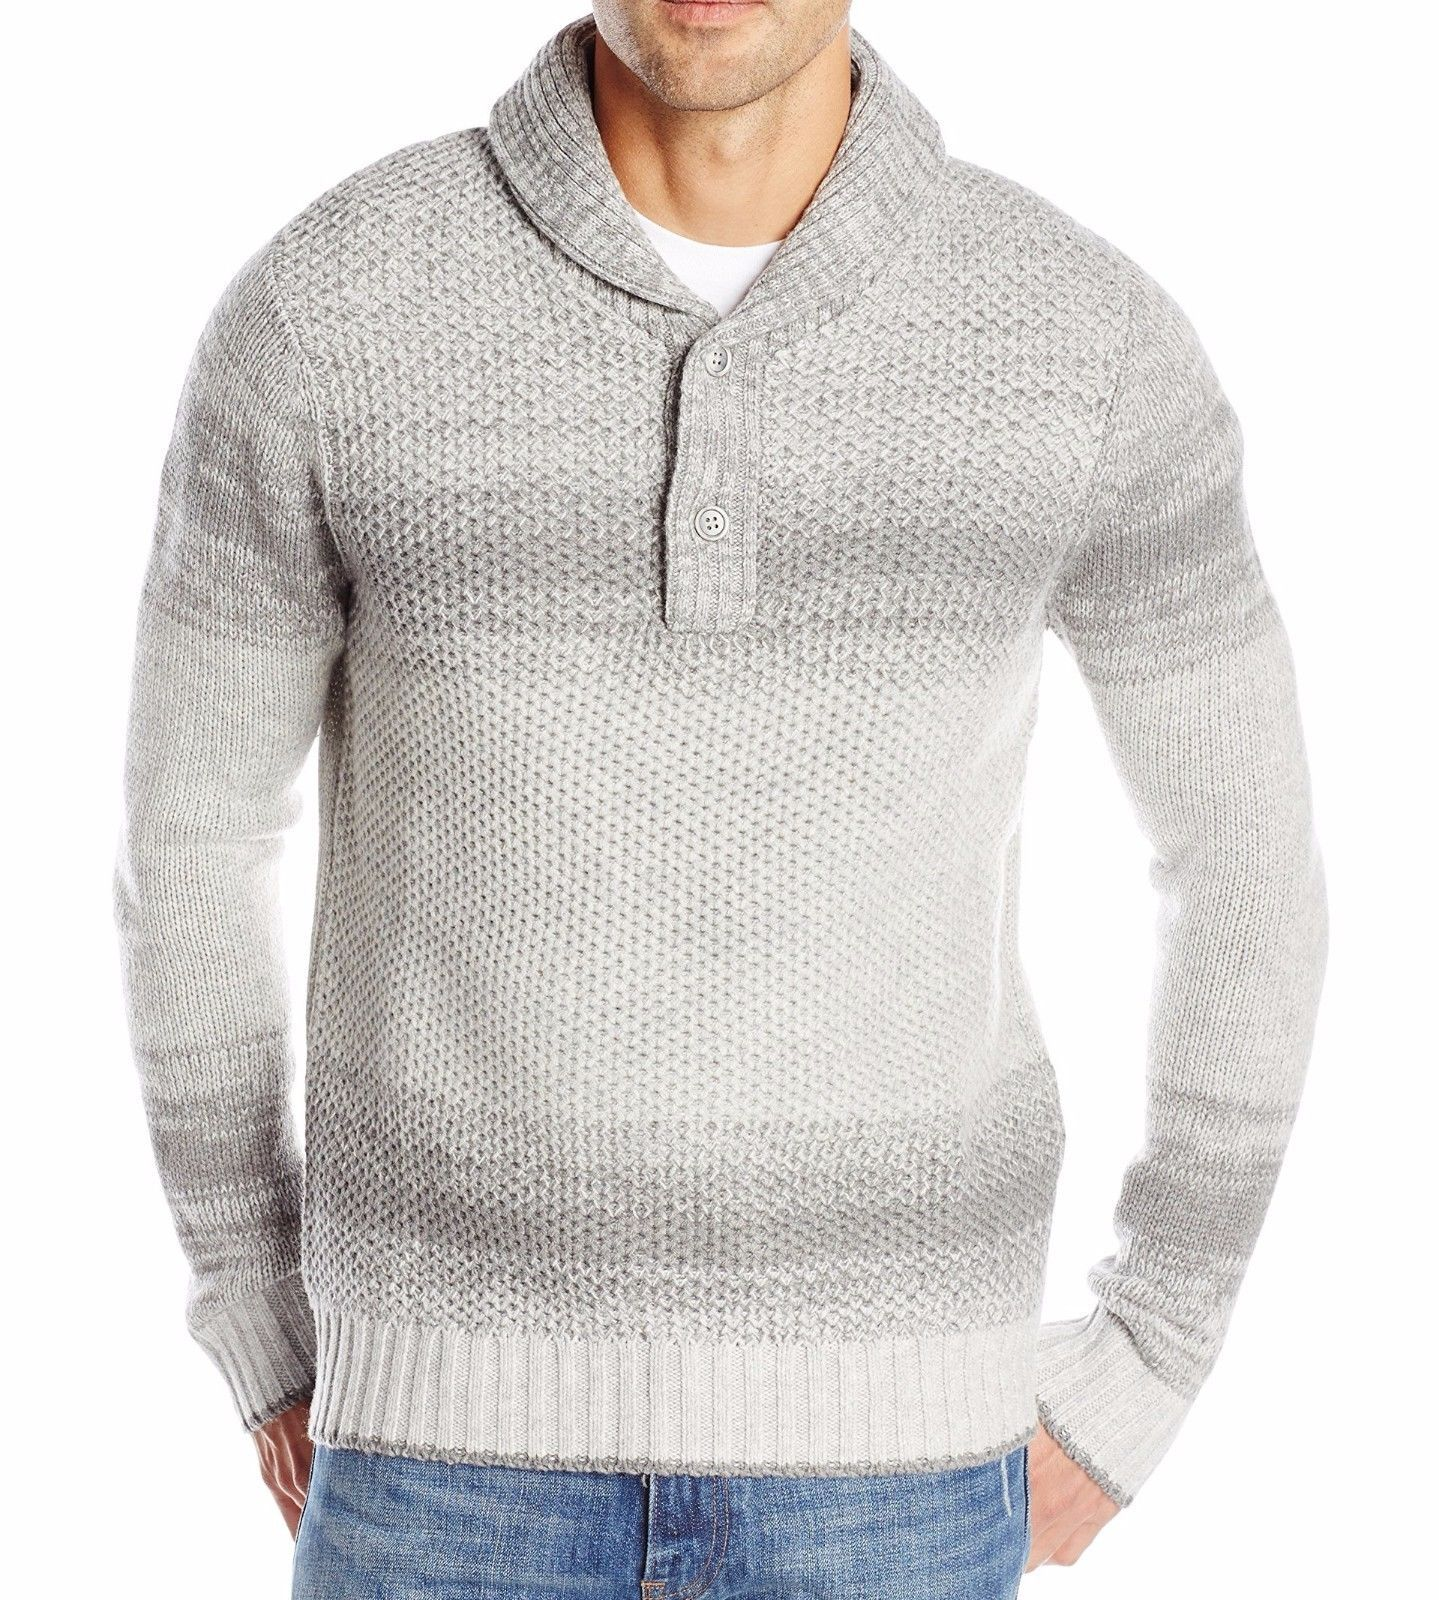 Nautica Men's Lofty Ombre Shawl Collar Sweater Grey Heather X-Large